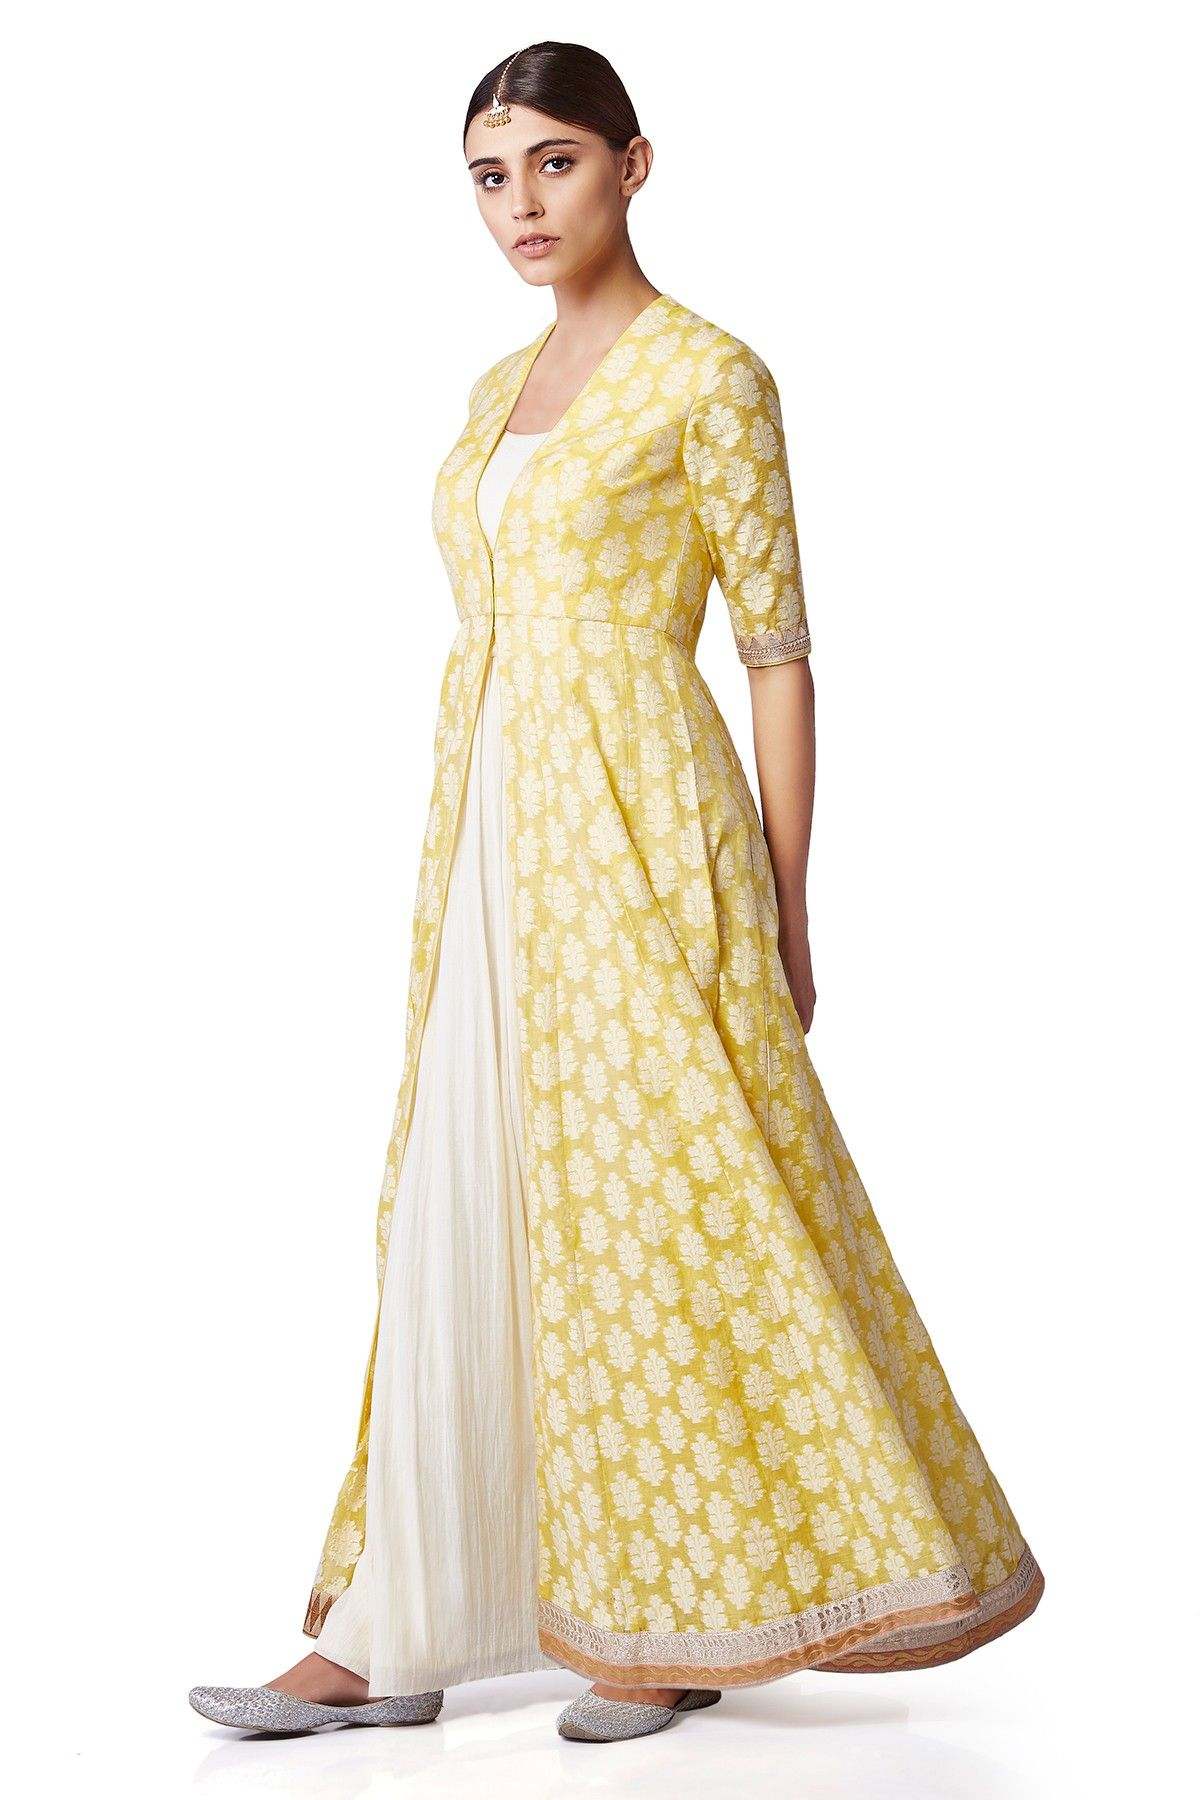 An elegant tunic in gentle hues of yellow with an intricate